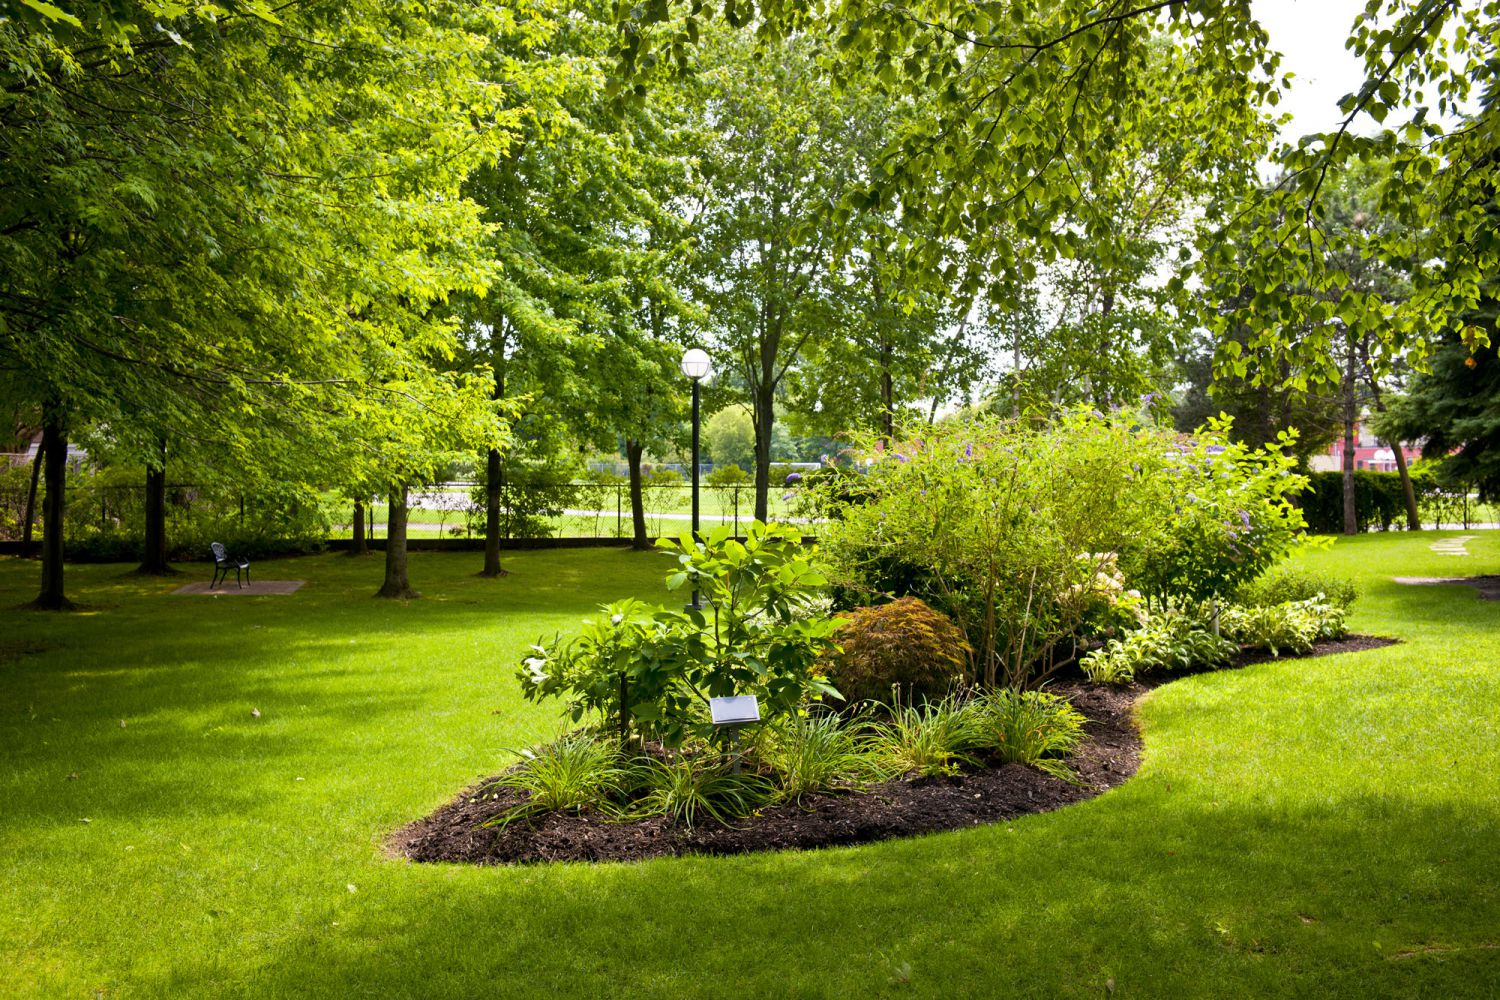 Landscaping can do wonders for your yard in Enterprise, AL